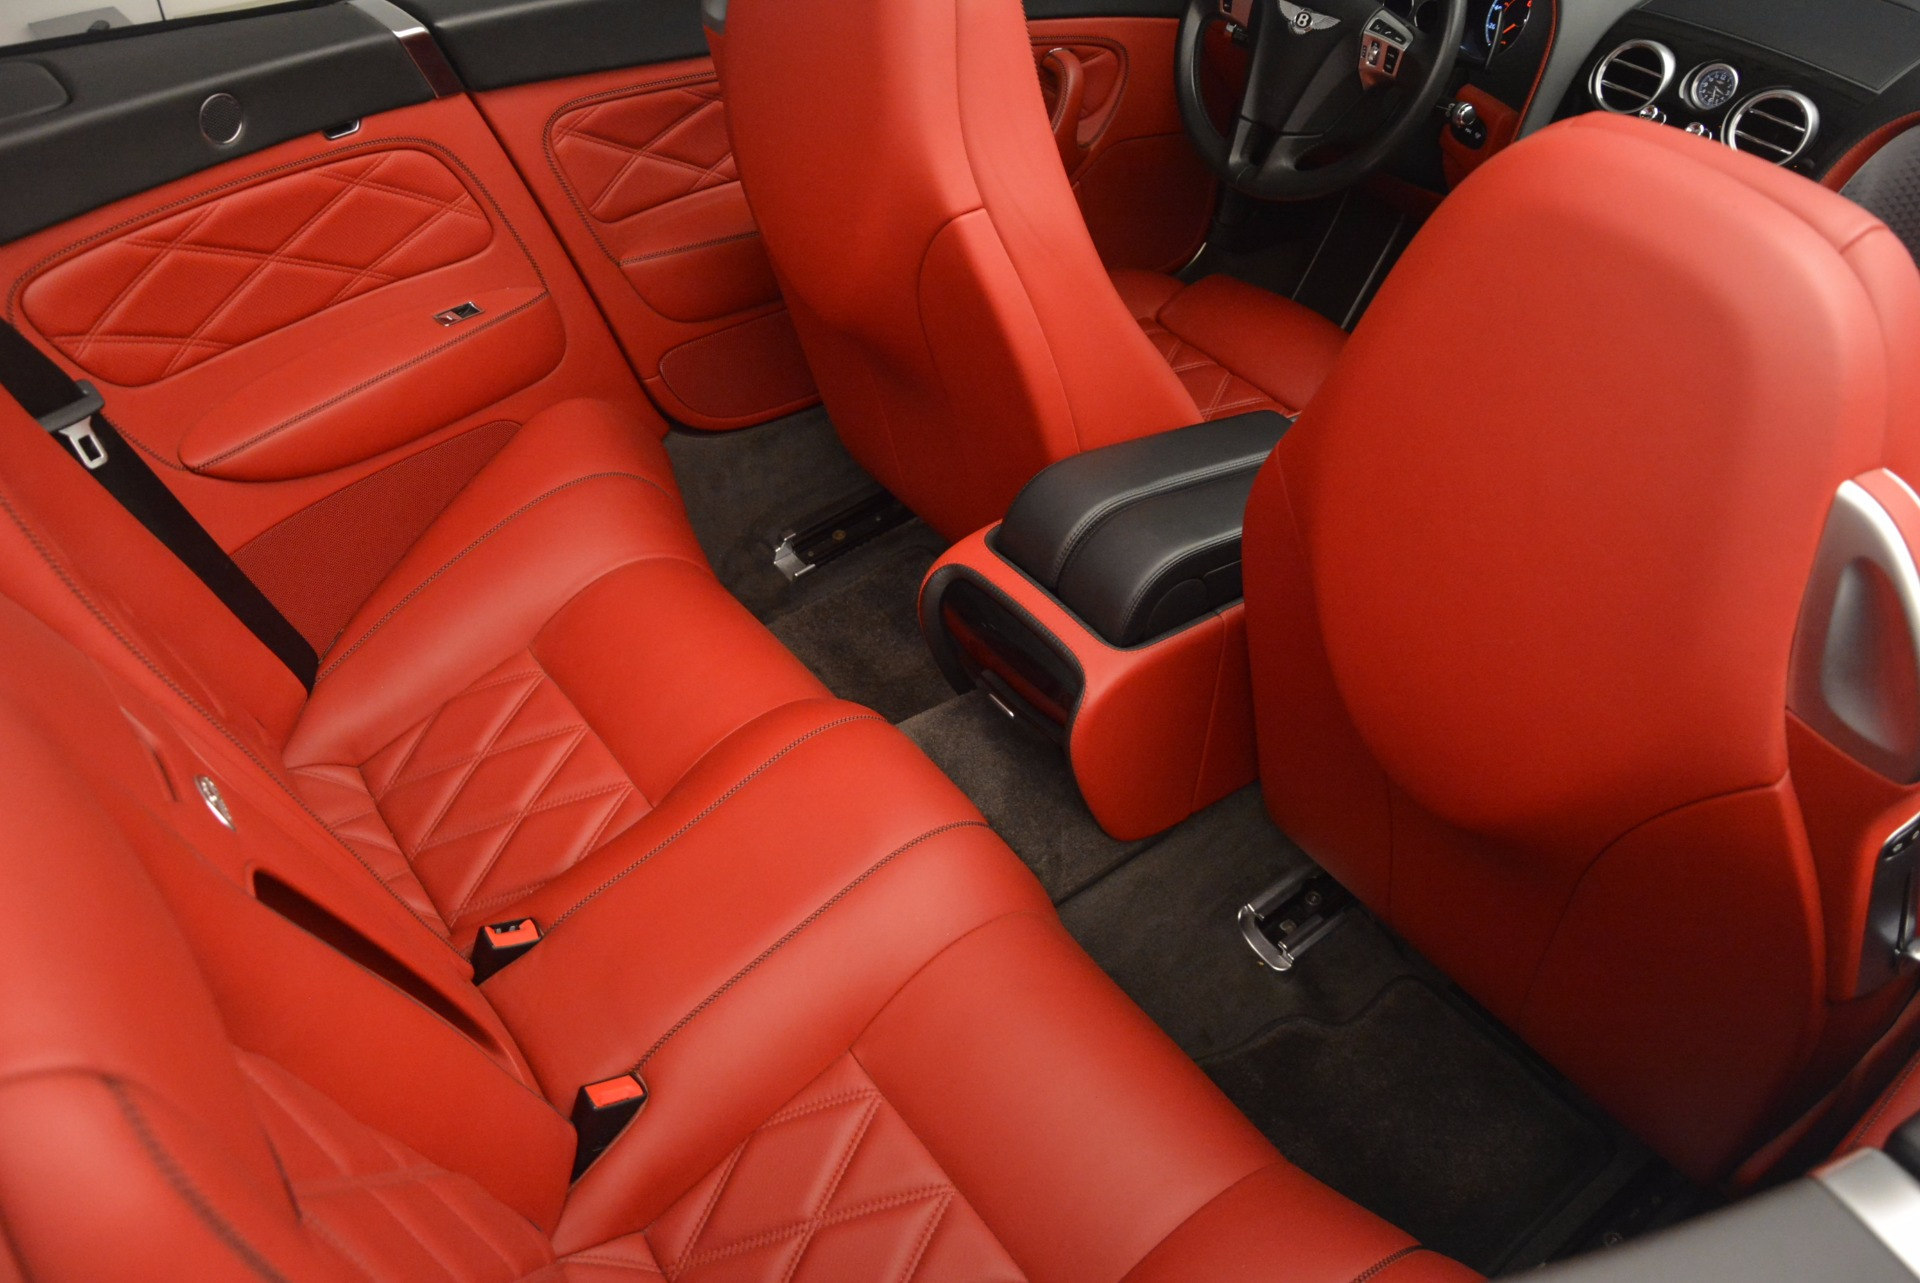 Used 2010 Bentley Continental GT Speed For Sale In Westport, CT 1298_p45